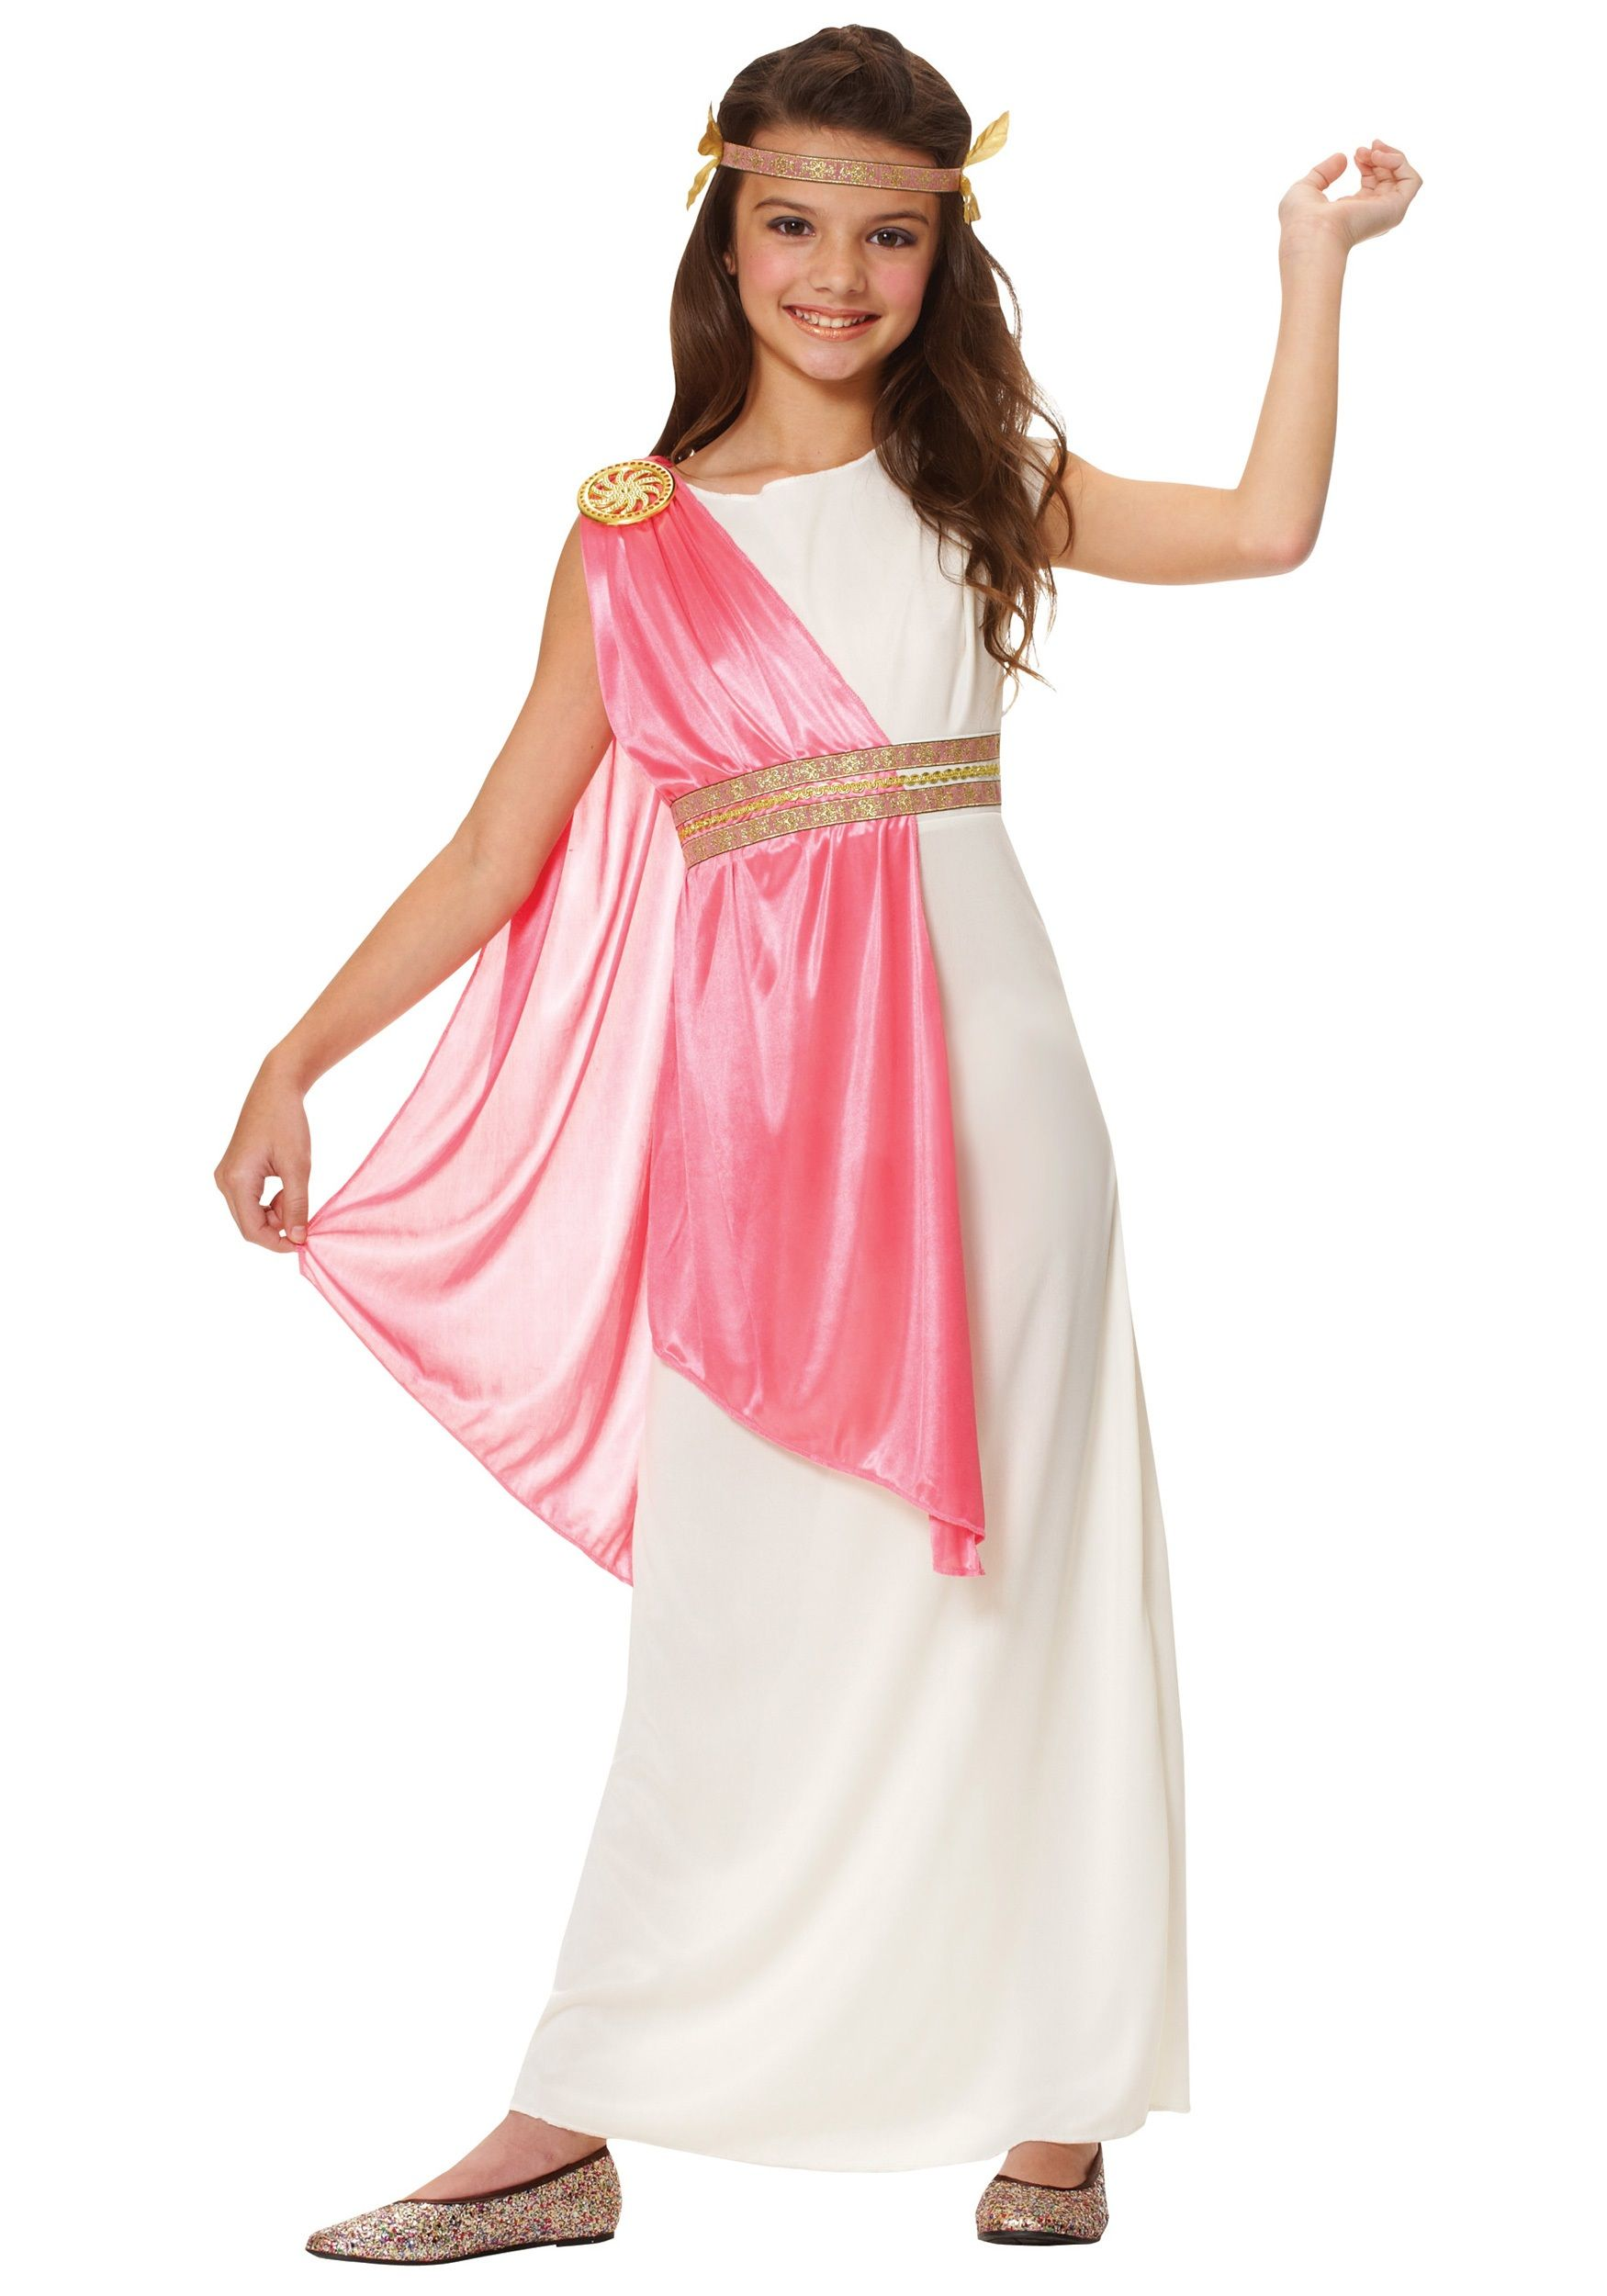 A great greek goddess costume | costumes | Pinterest ...